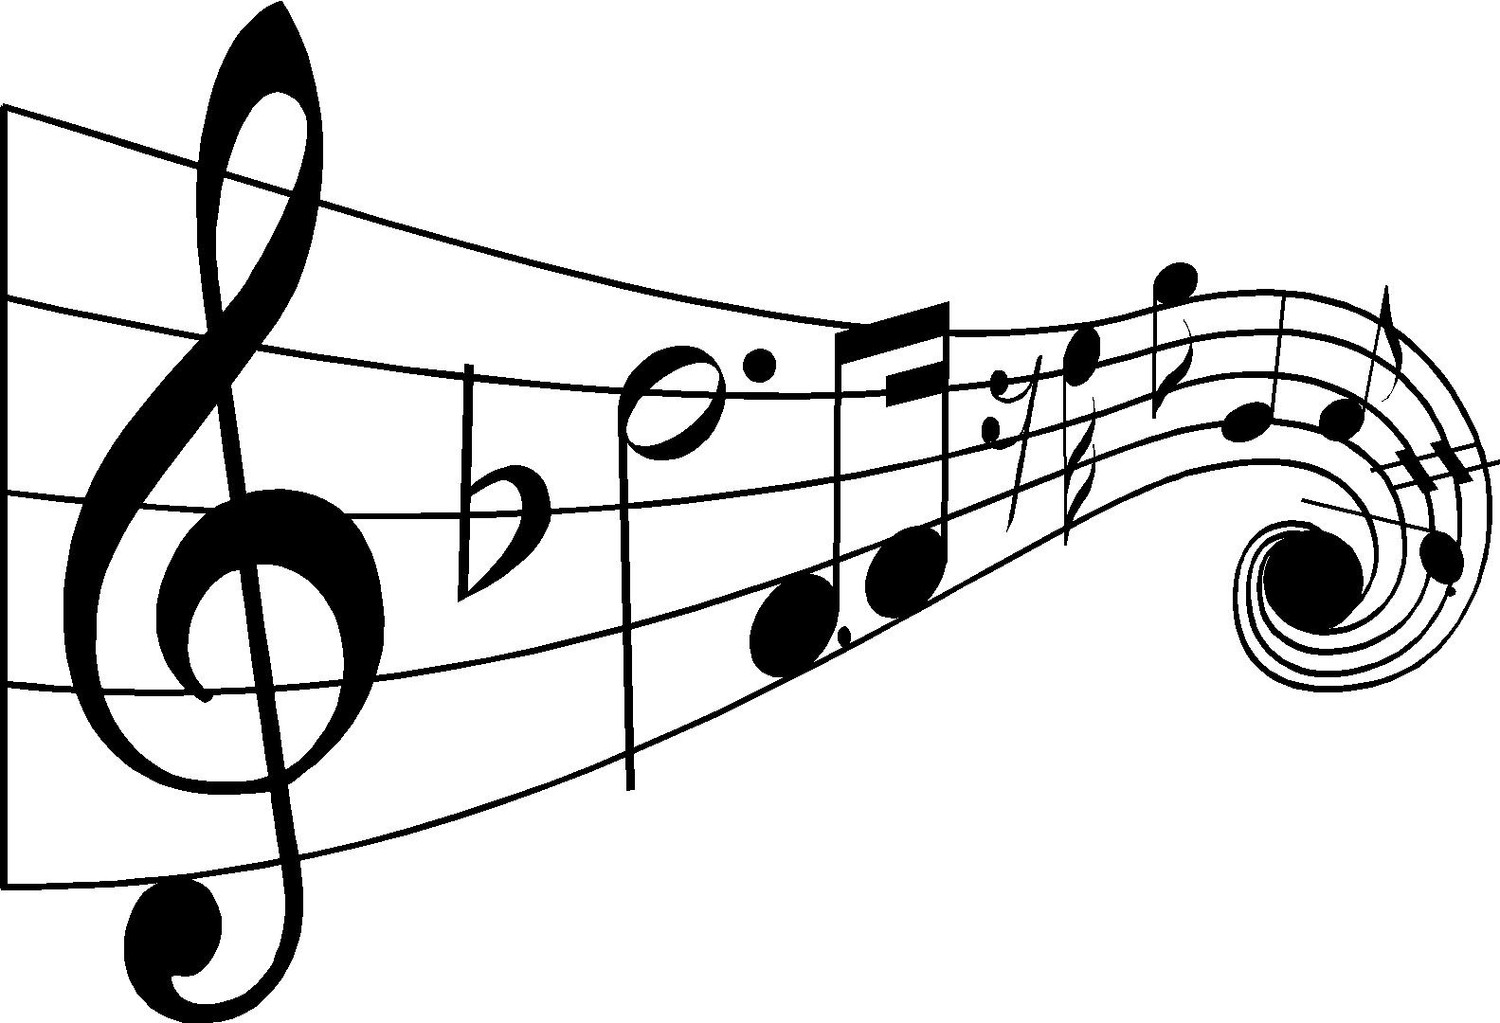 Musical Notes Symbols on Facebook Music Note Facebook Music